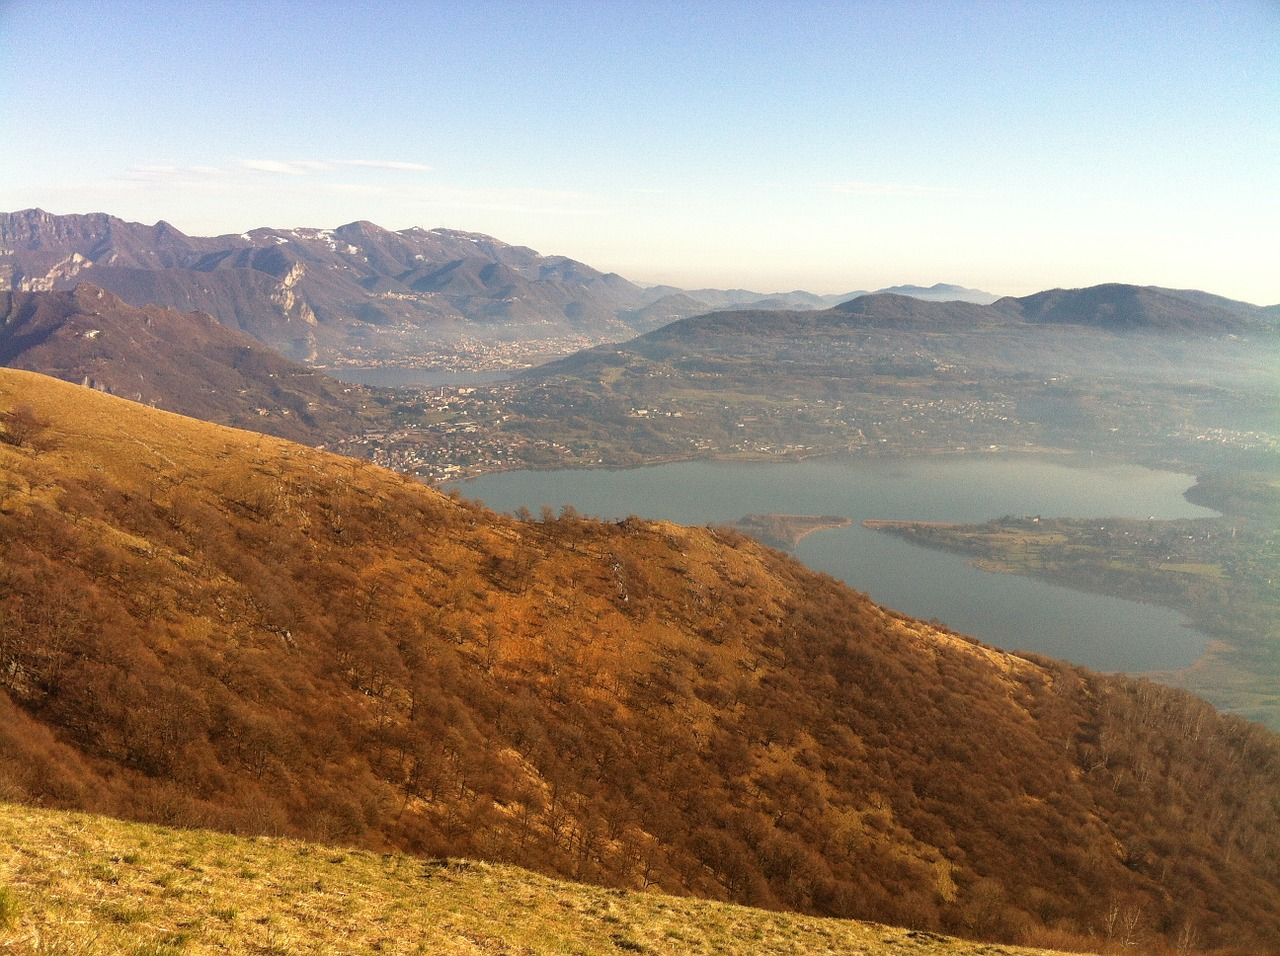 alta brianza,lake,annone,oggiono,panoramic,view from monte barro,free pictures, free photos, free images, royalty free, free illustrations, public domain